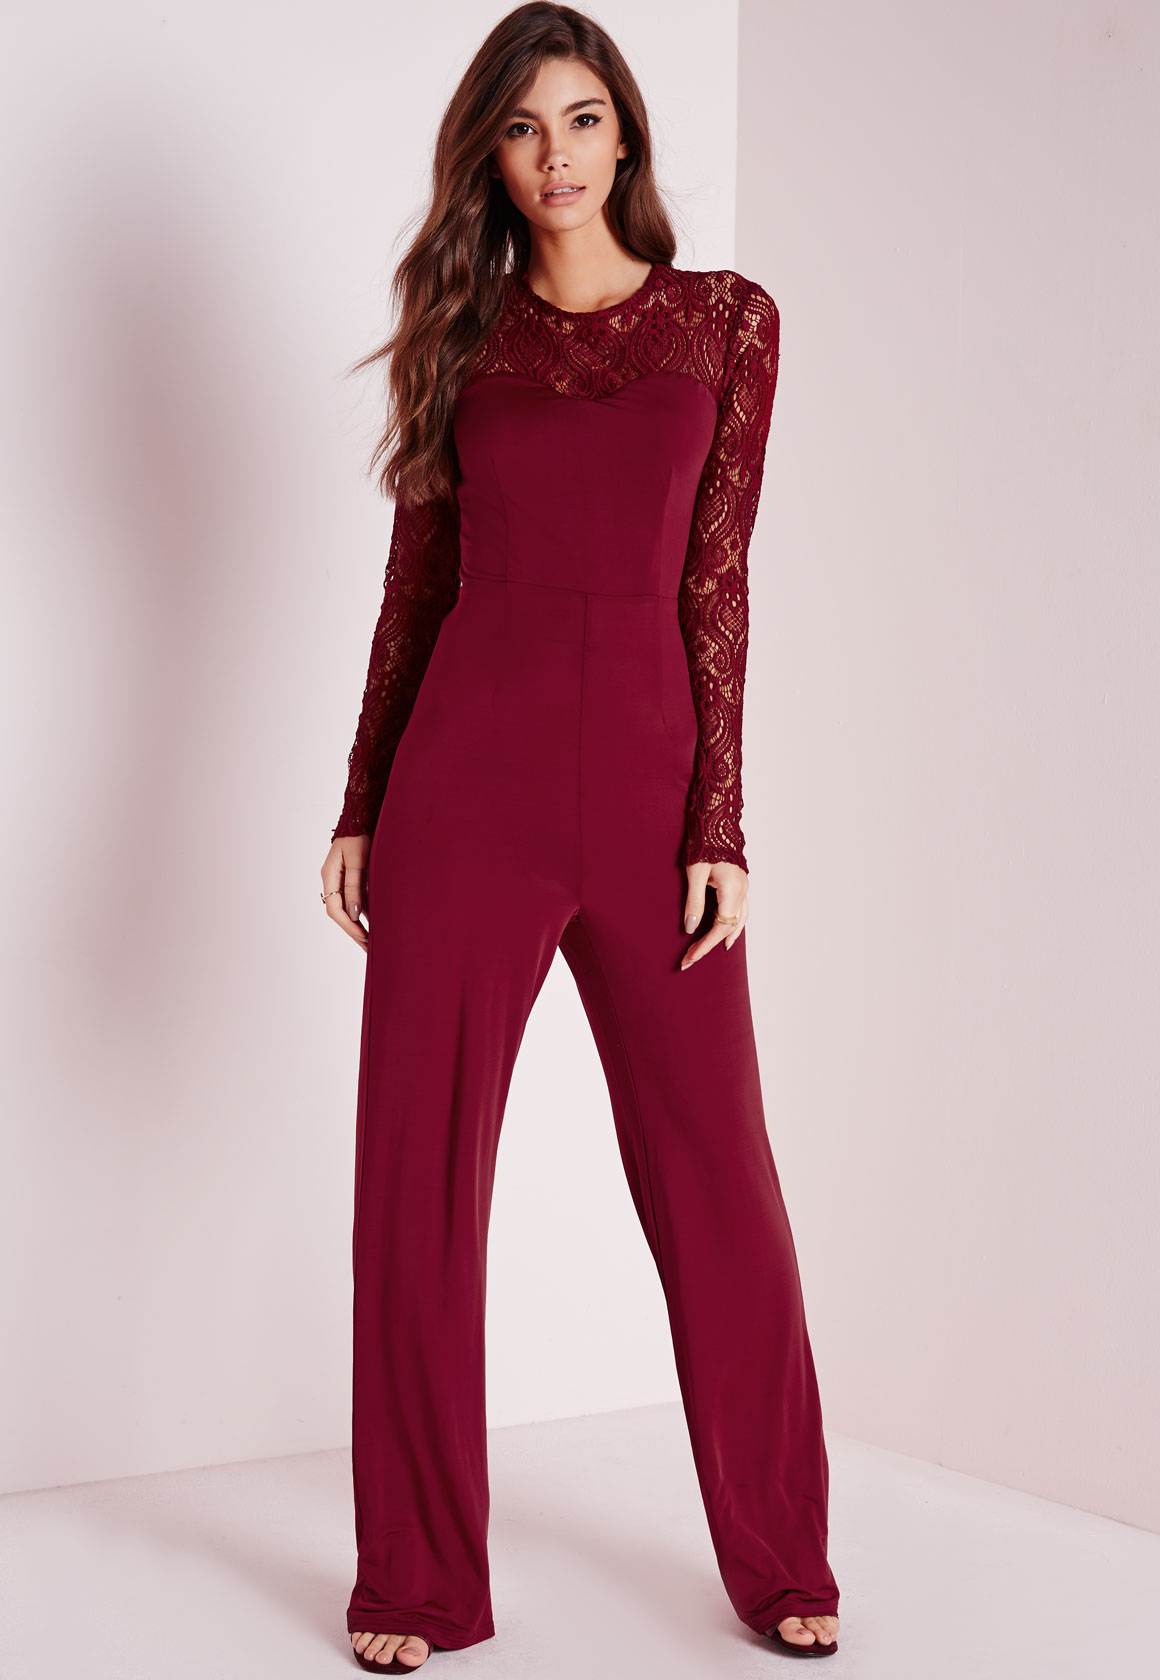 Lyst - Missguided Lace Slinky Jumpsuit Burgundy In Red